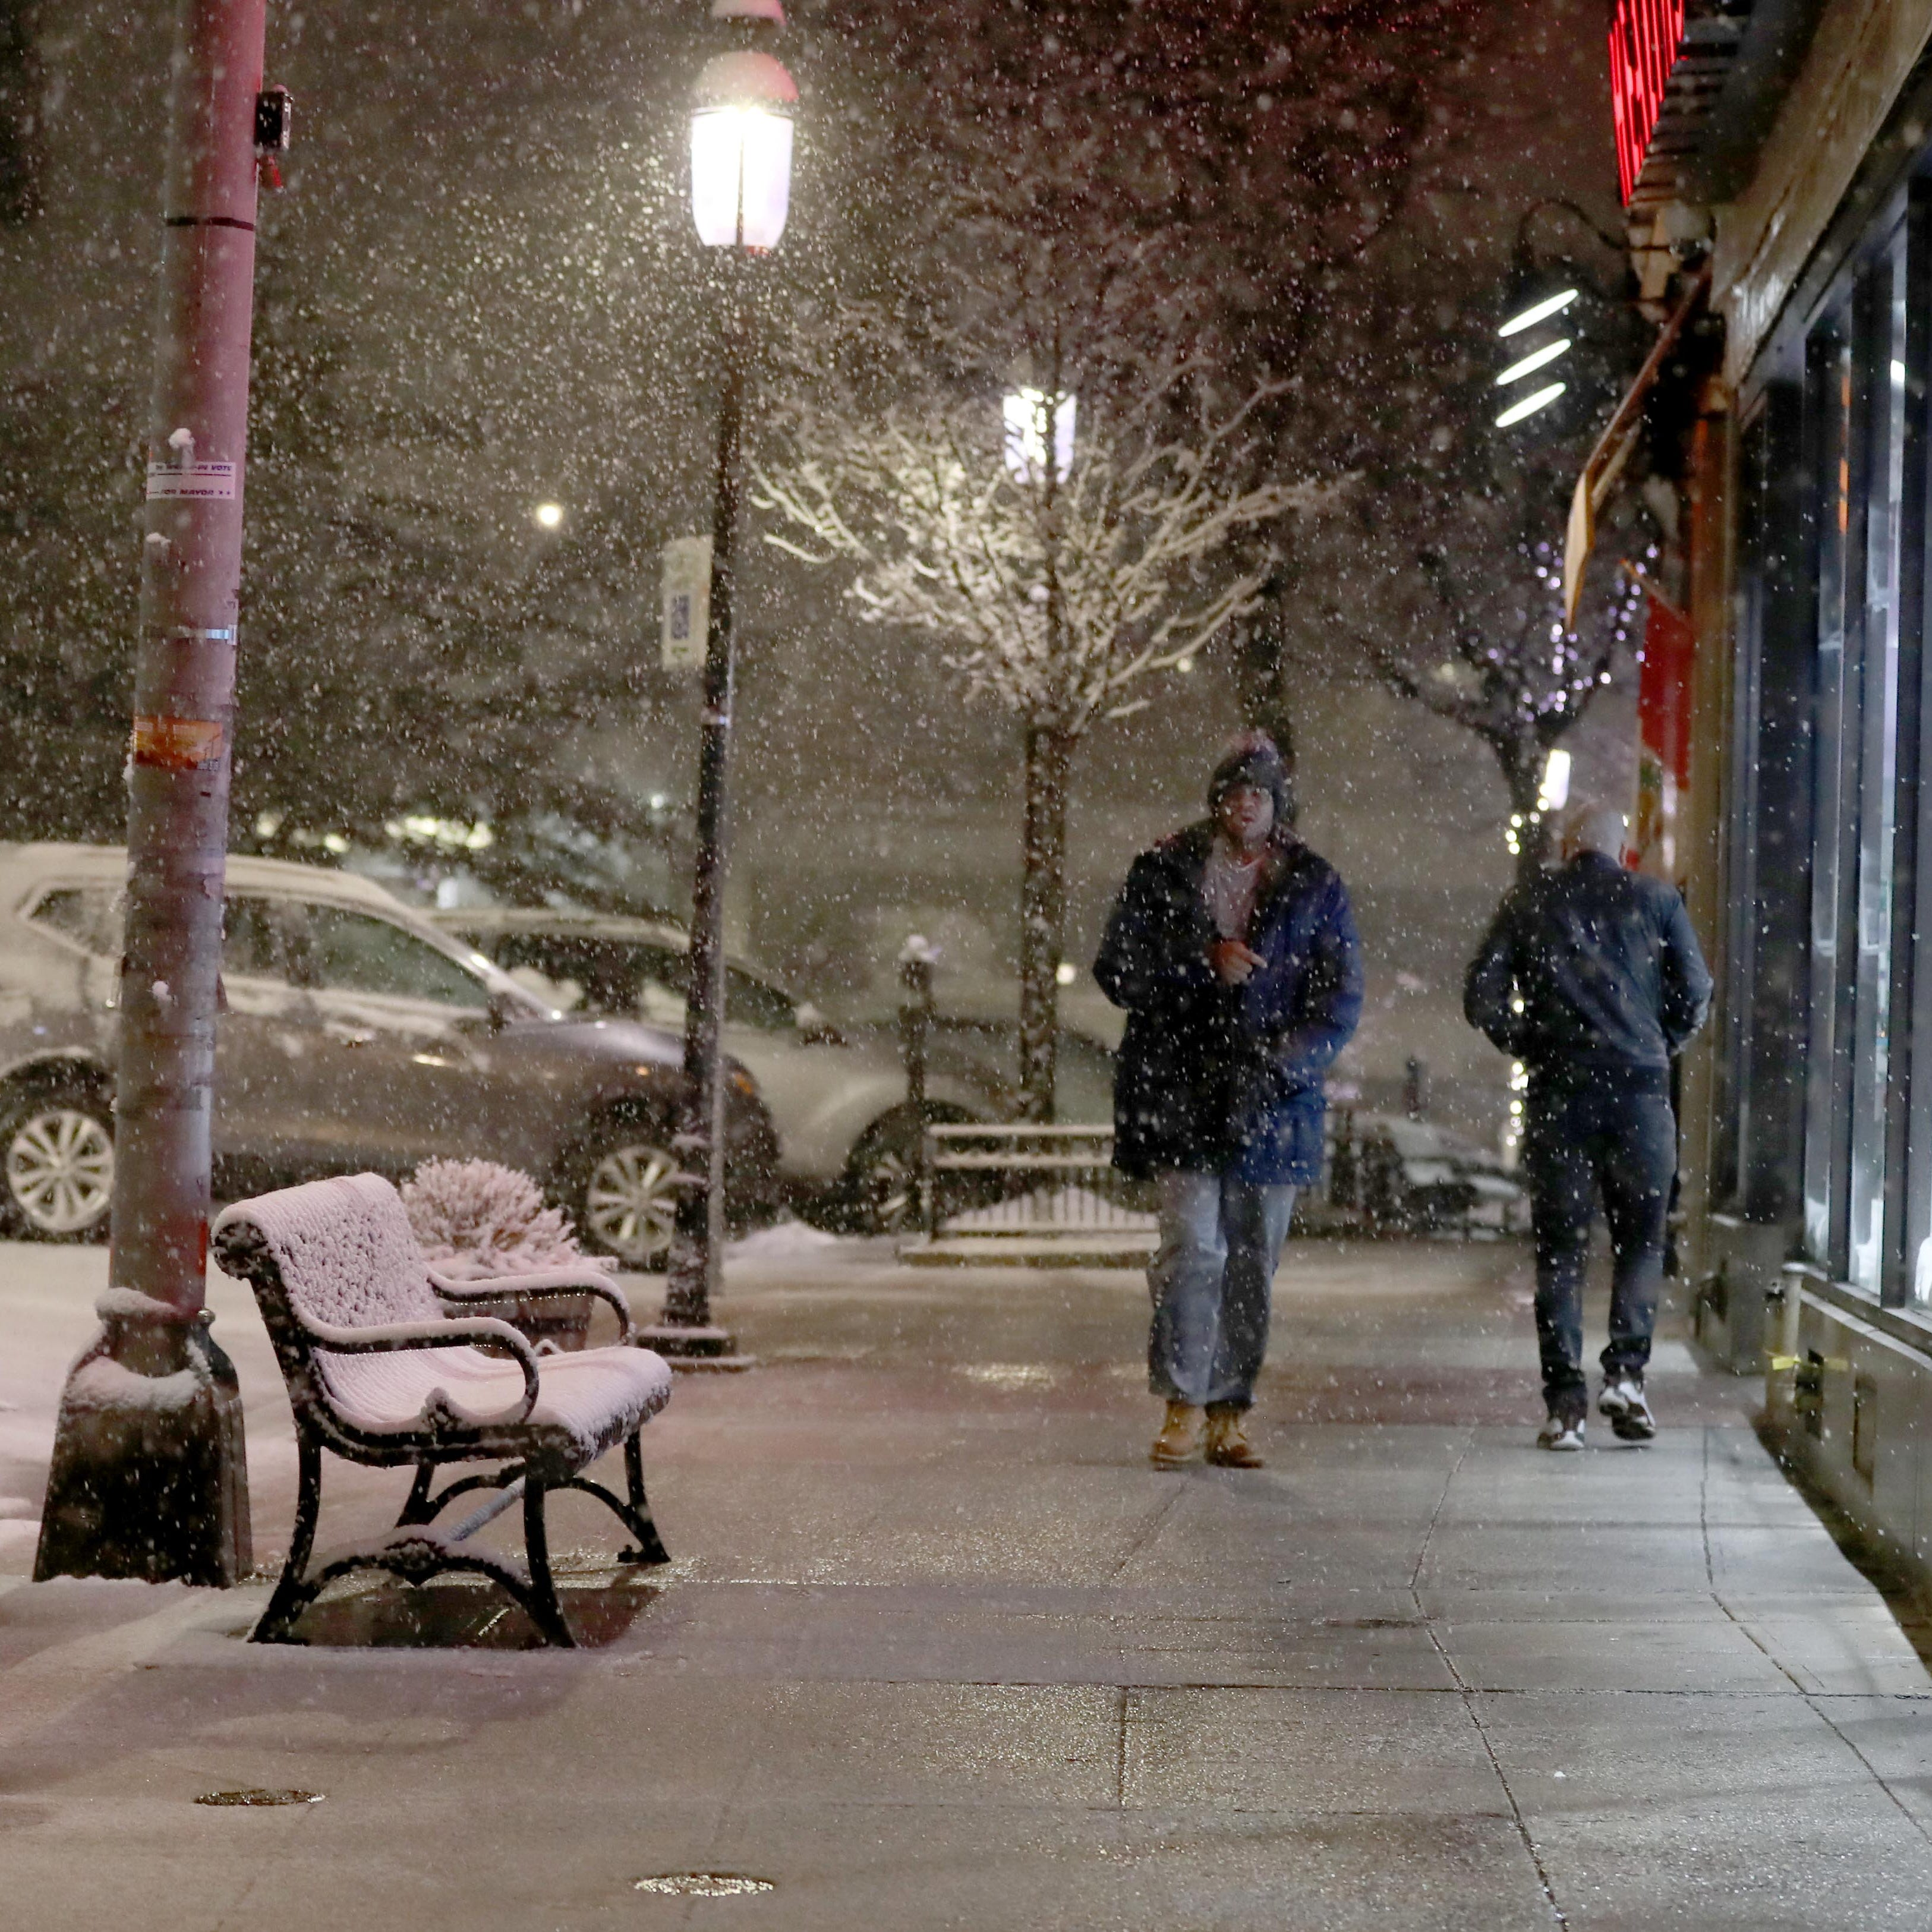 A heavy forecast: 4 to 8 inches to greet the a.m. commute